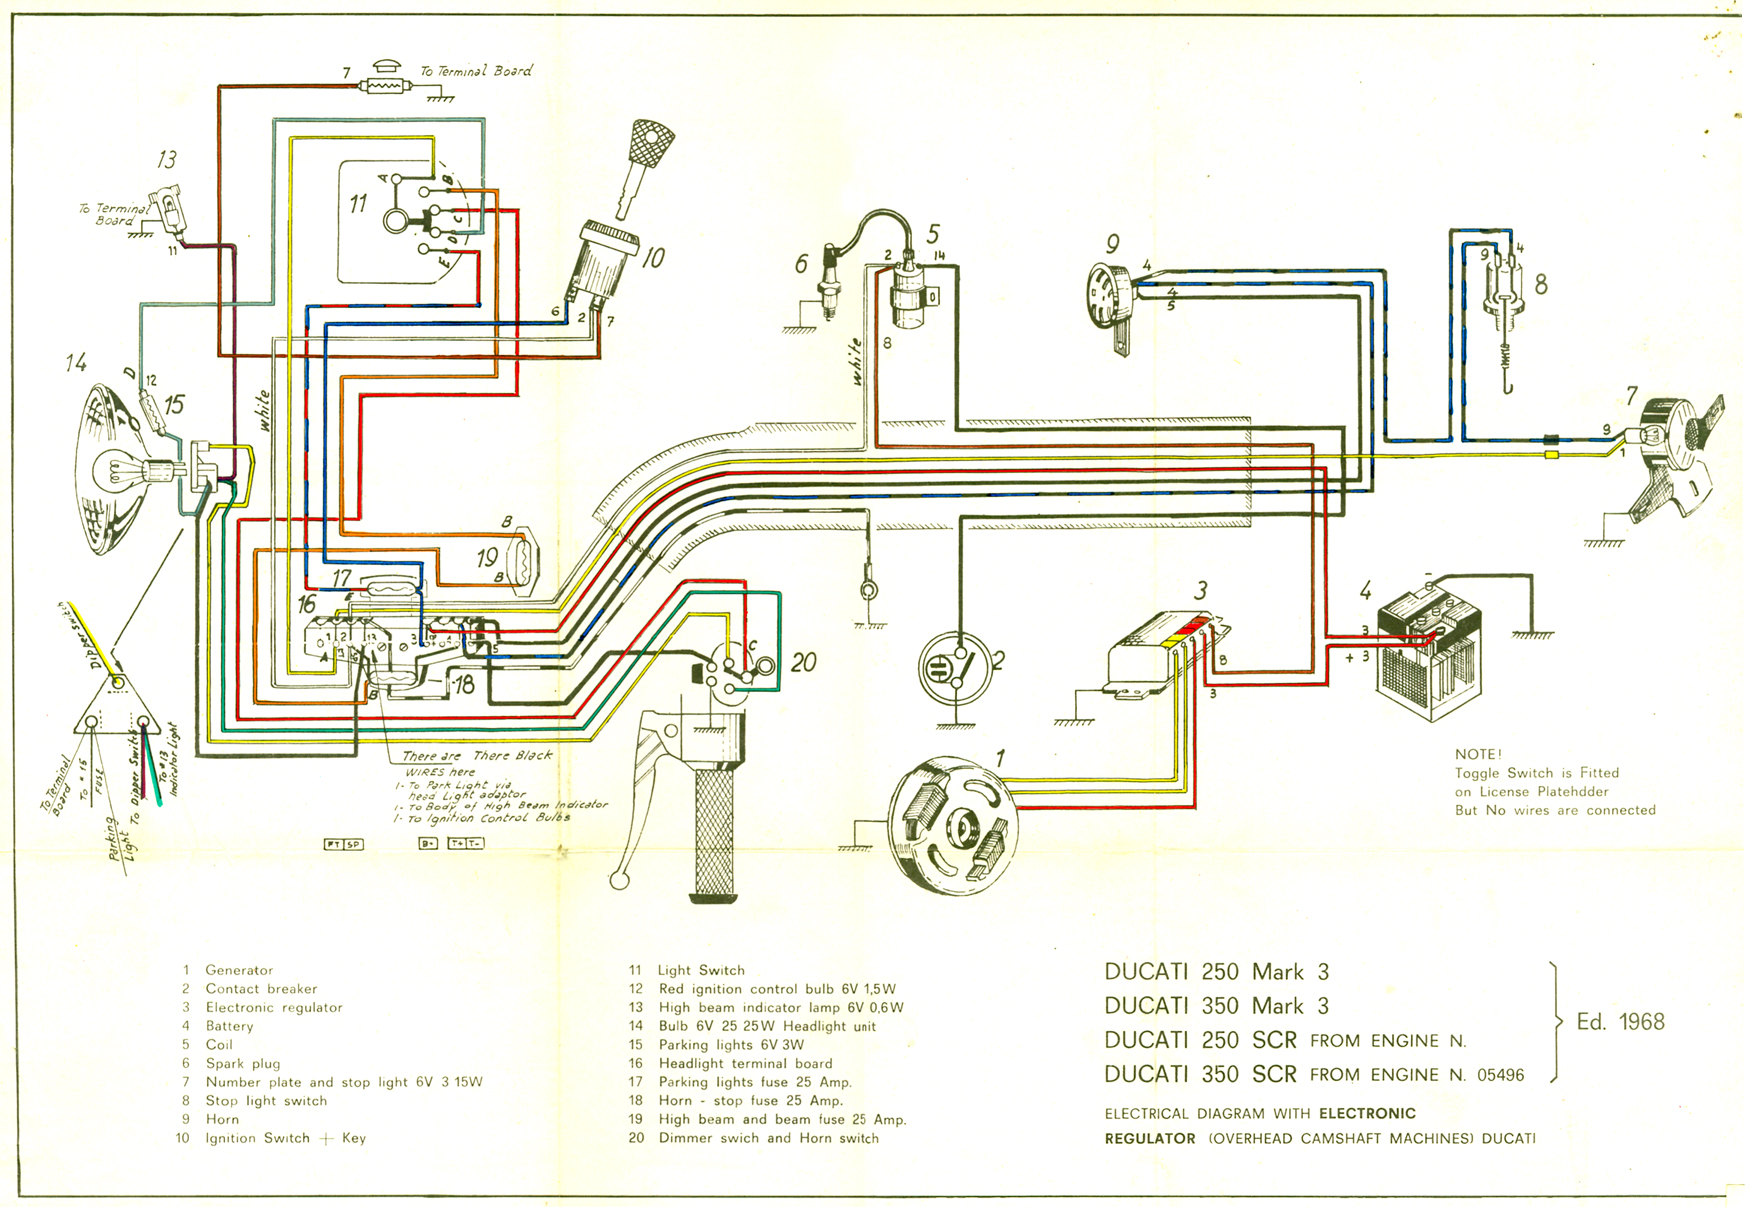 ducati 996 wiring diagram workshop manual wiring diagram fuse box u2022 rh friendsoffido co 2002 Yamaha R6 Wiring-Diagram 2002 Yamaha R6 Wiring-Diagram